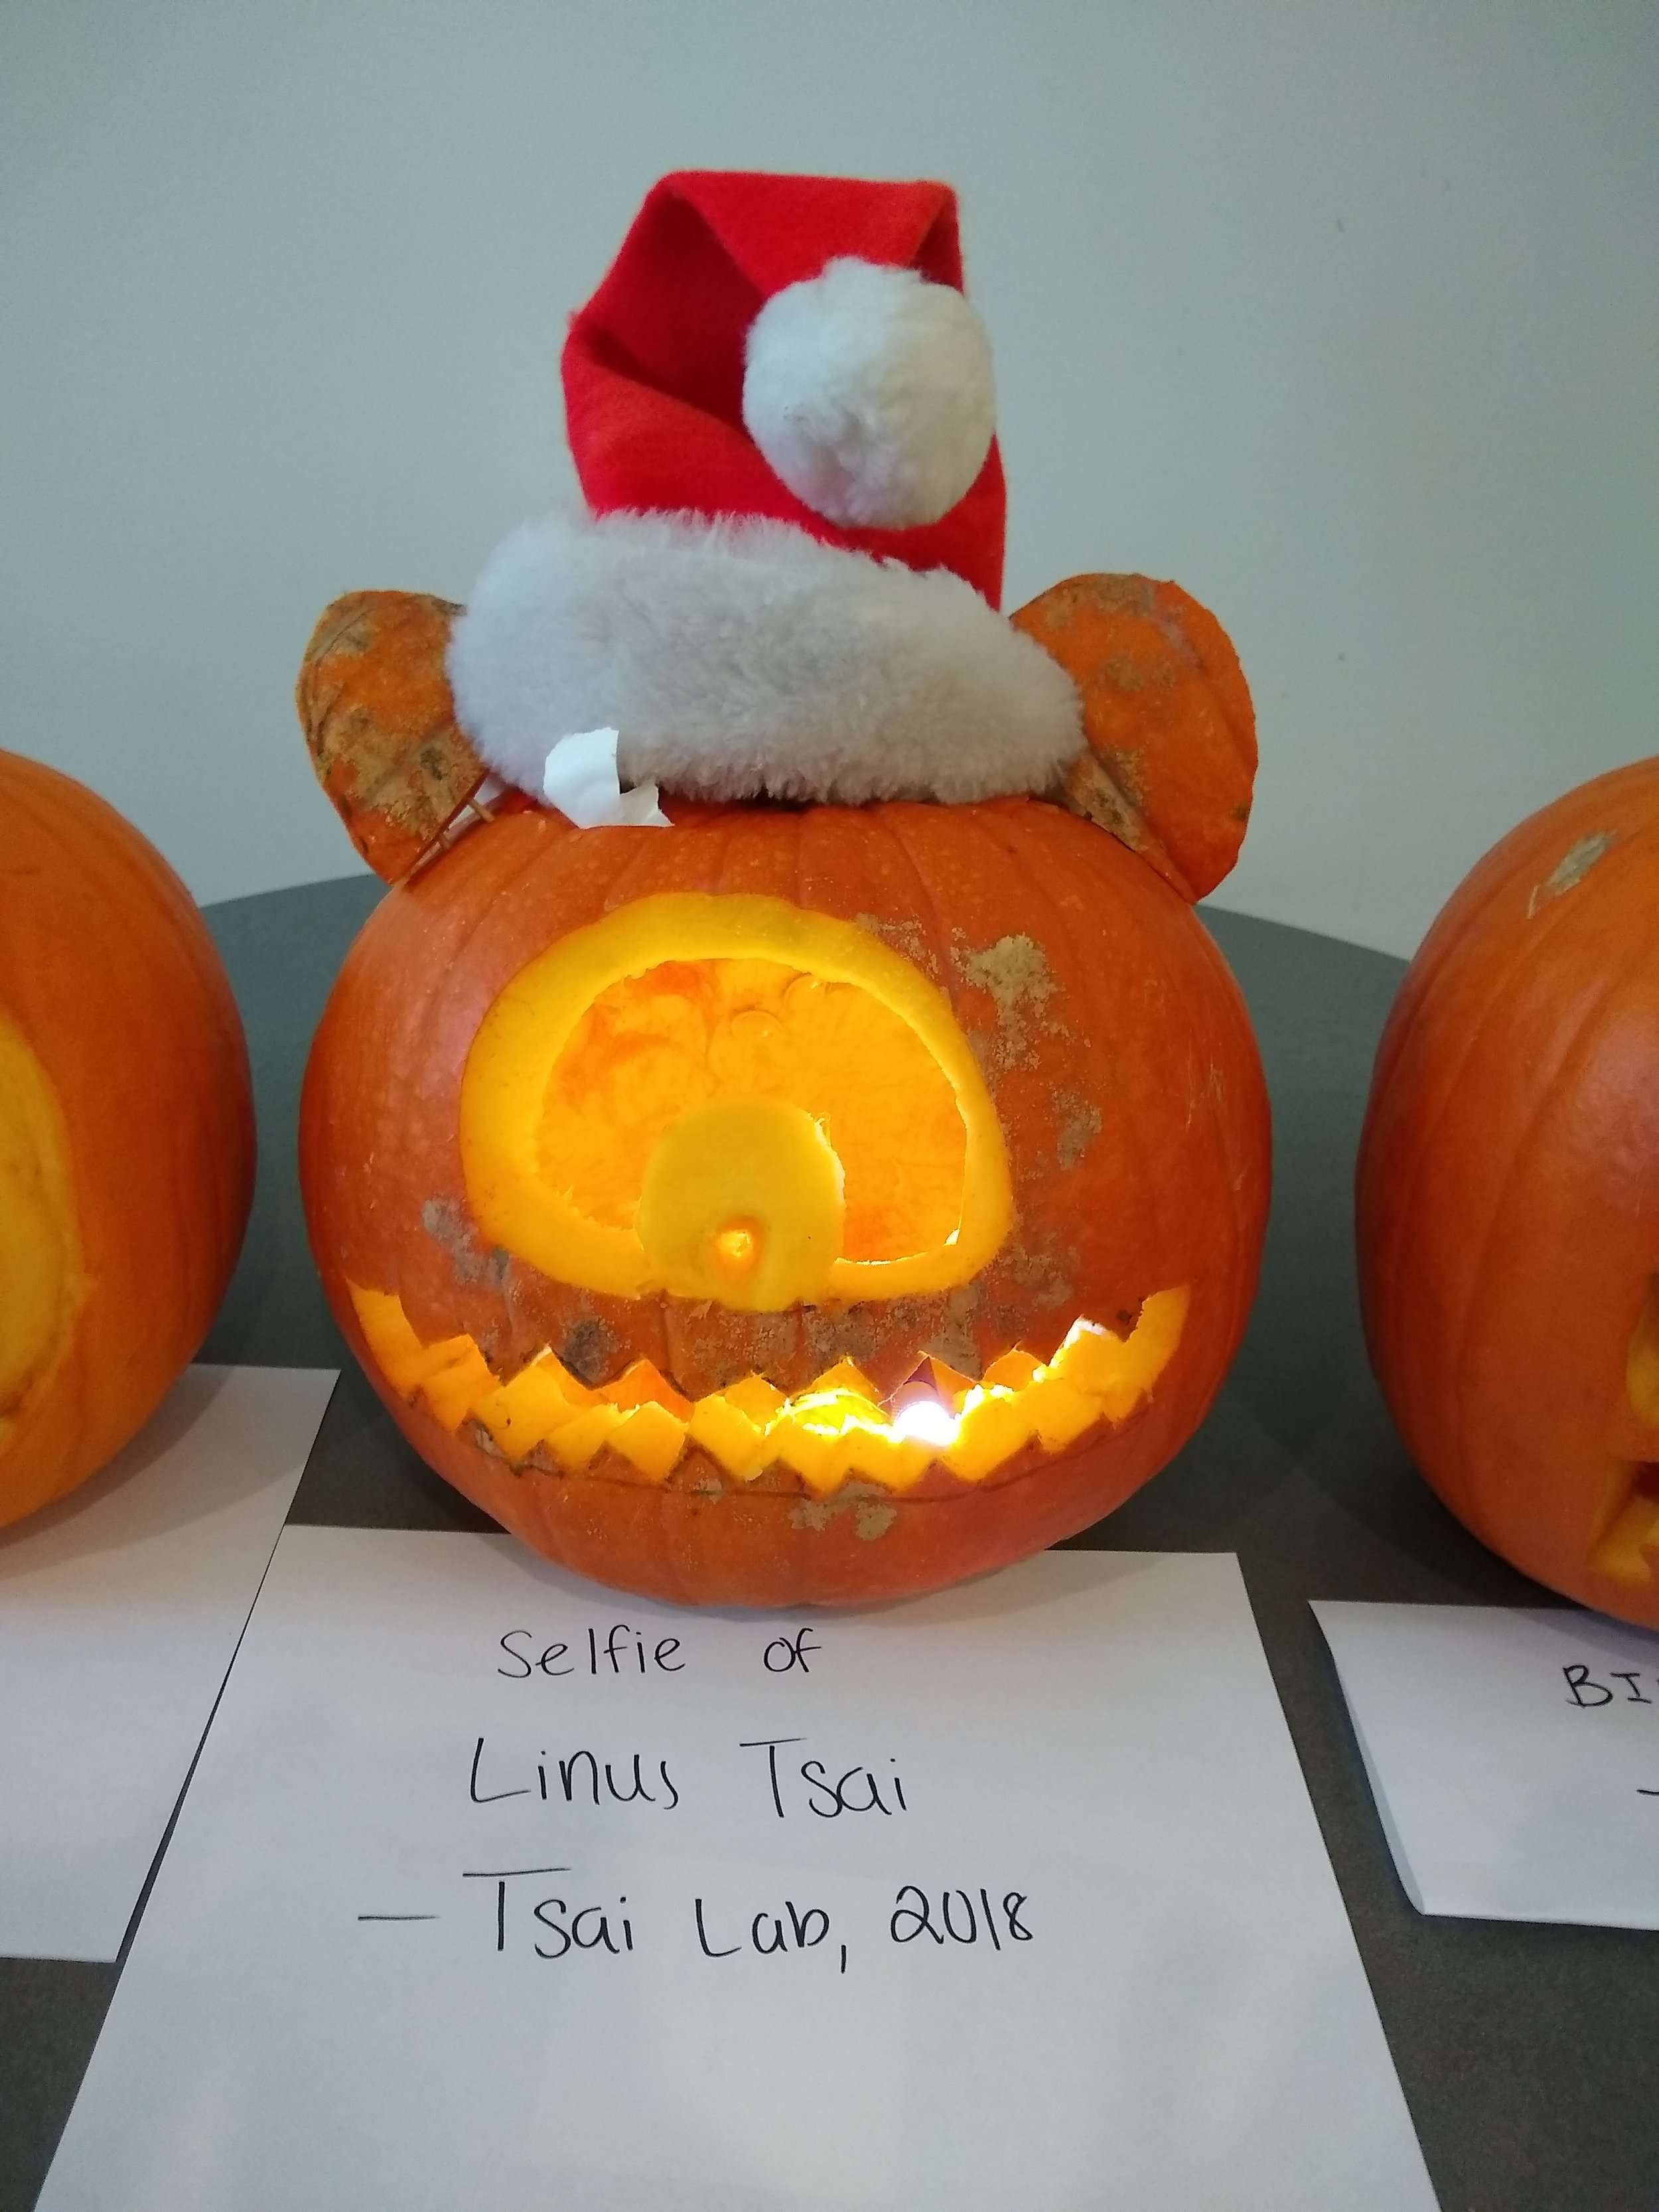 The ears are spot on. Seriously, how could that mug not win best pumpkin?